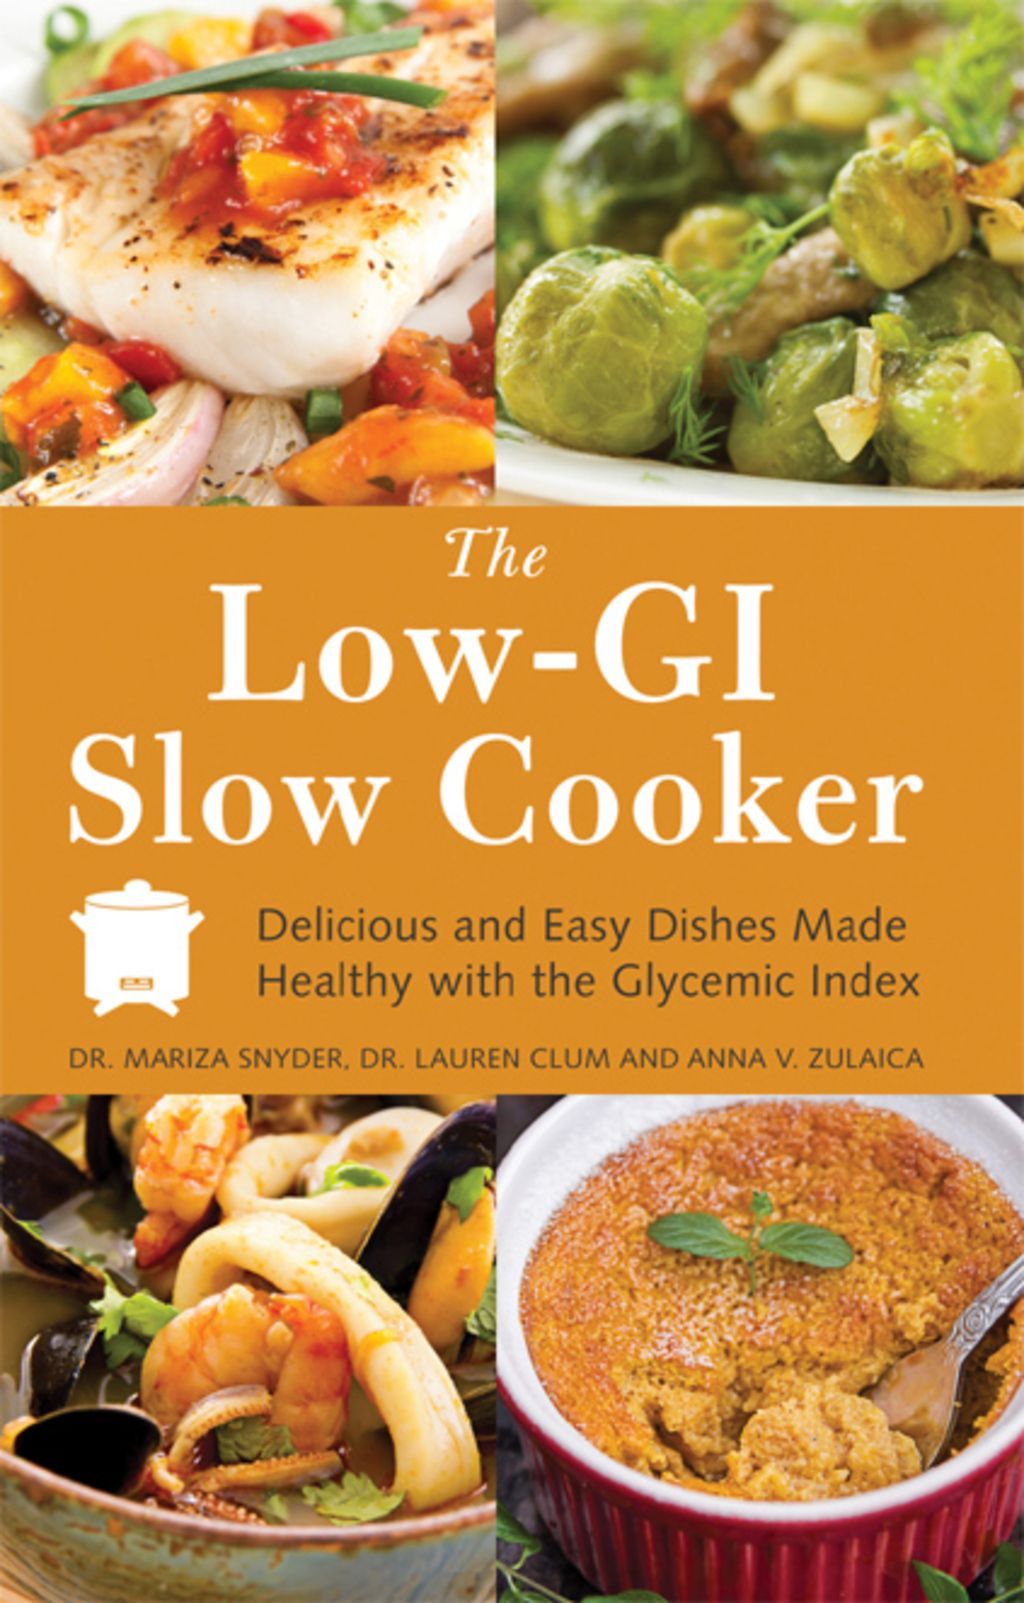 The Low GI Slow Cooker: Delicious and Easy Dishes Made Healthy with the Glycemic Index (eBook)